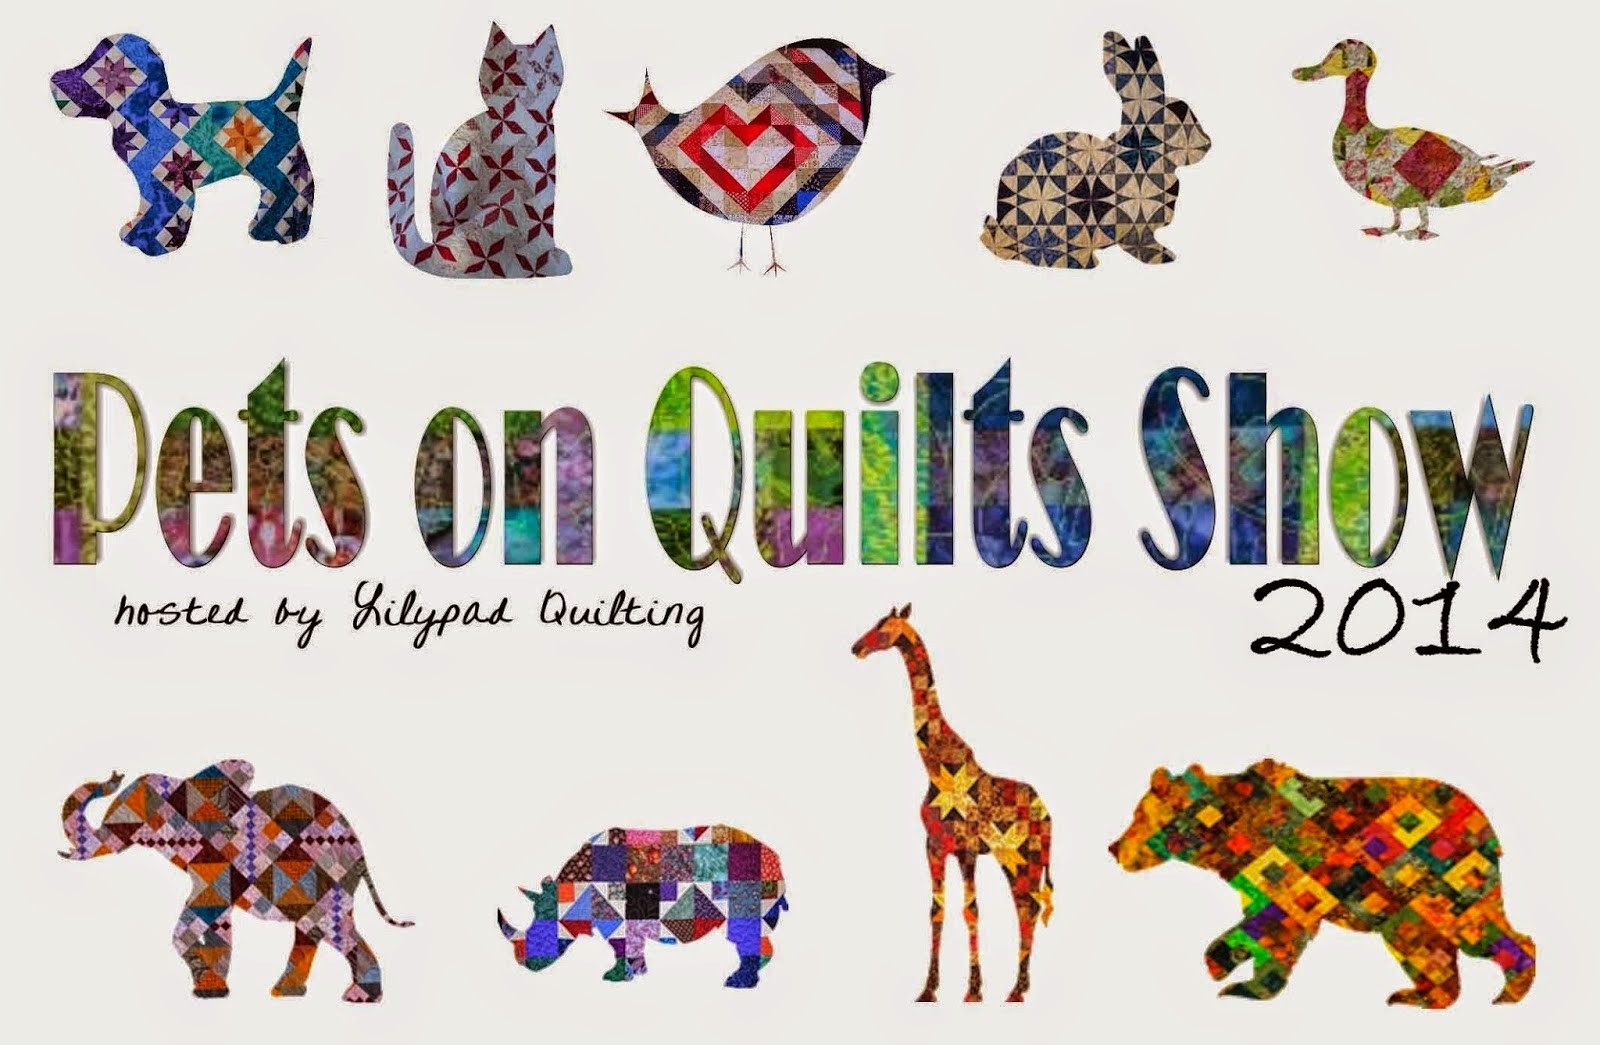 Pets on Quilts 2014